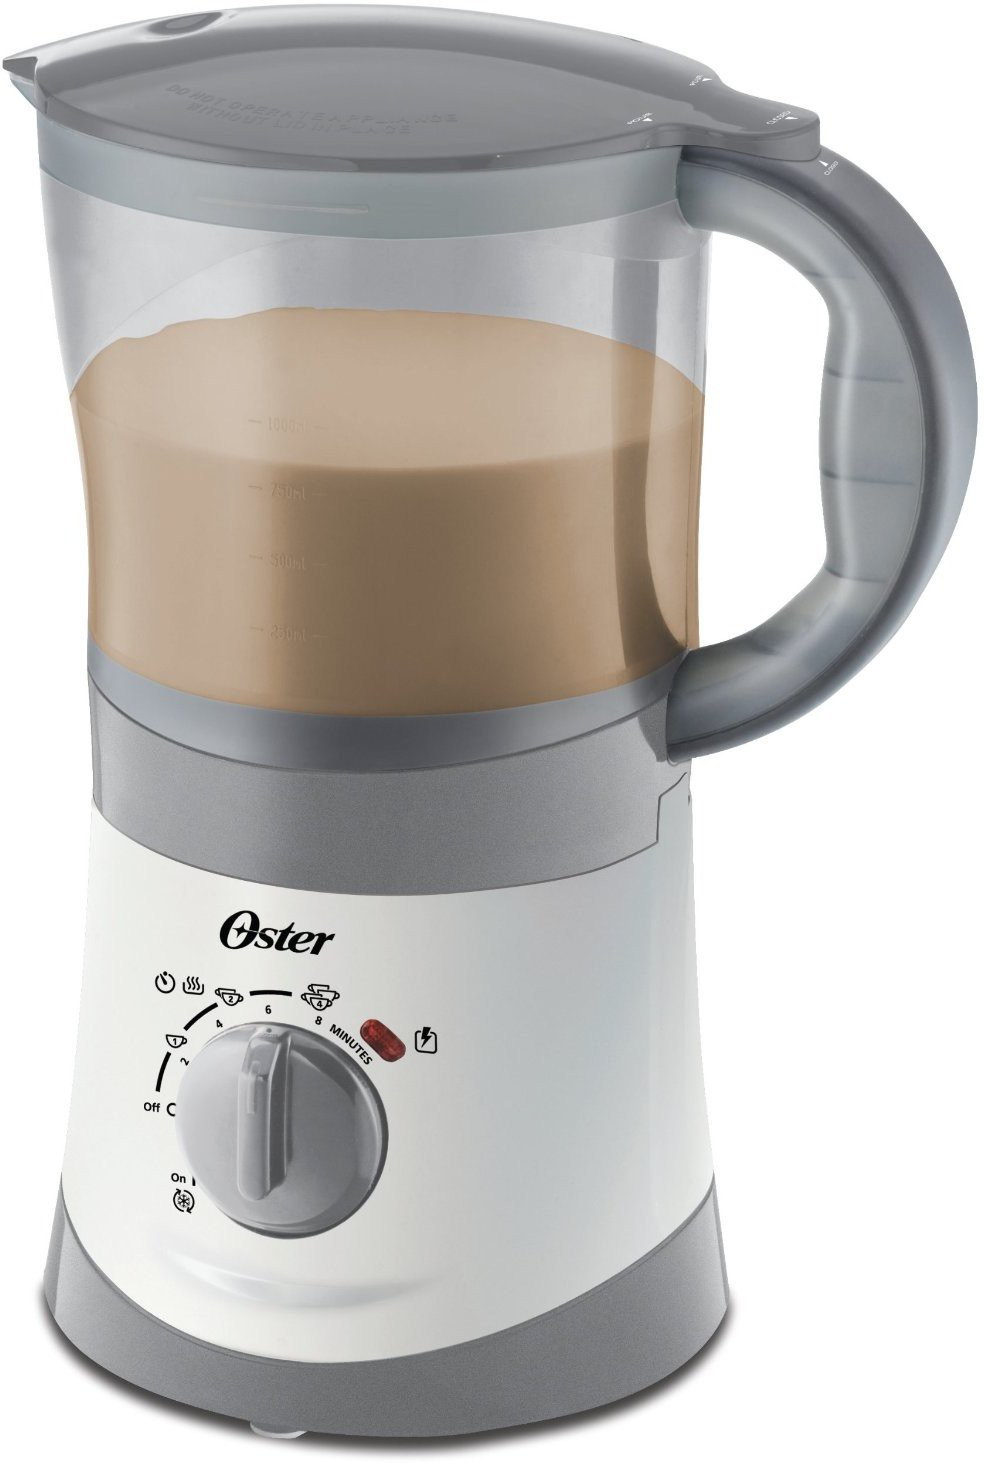 Coffee Maker At Flipkart : Oster BVSTHT6505 Coffee Maker Price in India - Buy Oster BVSTHT6505 Coffee Maker Online at ...